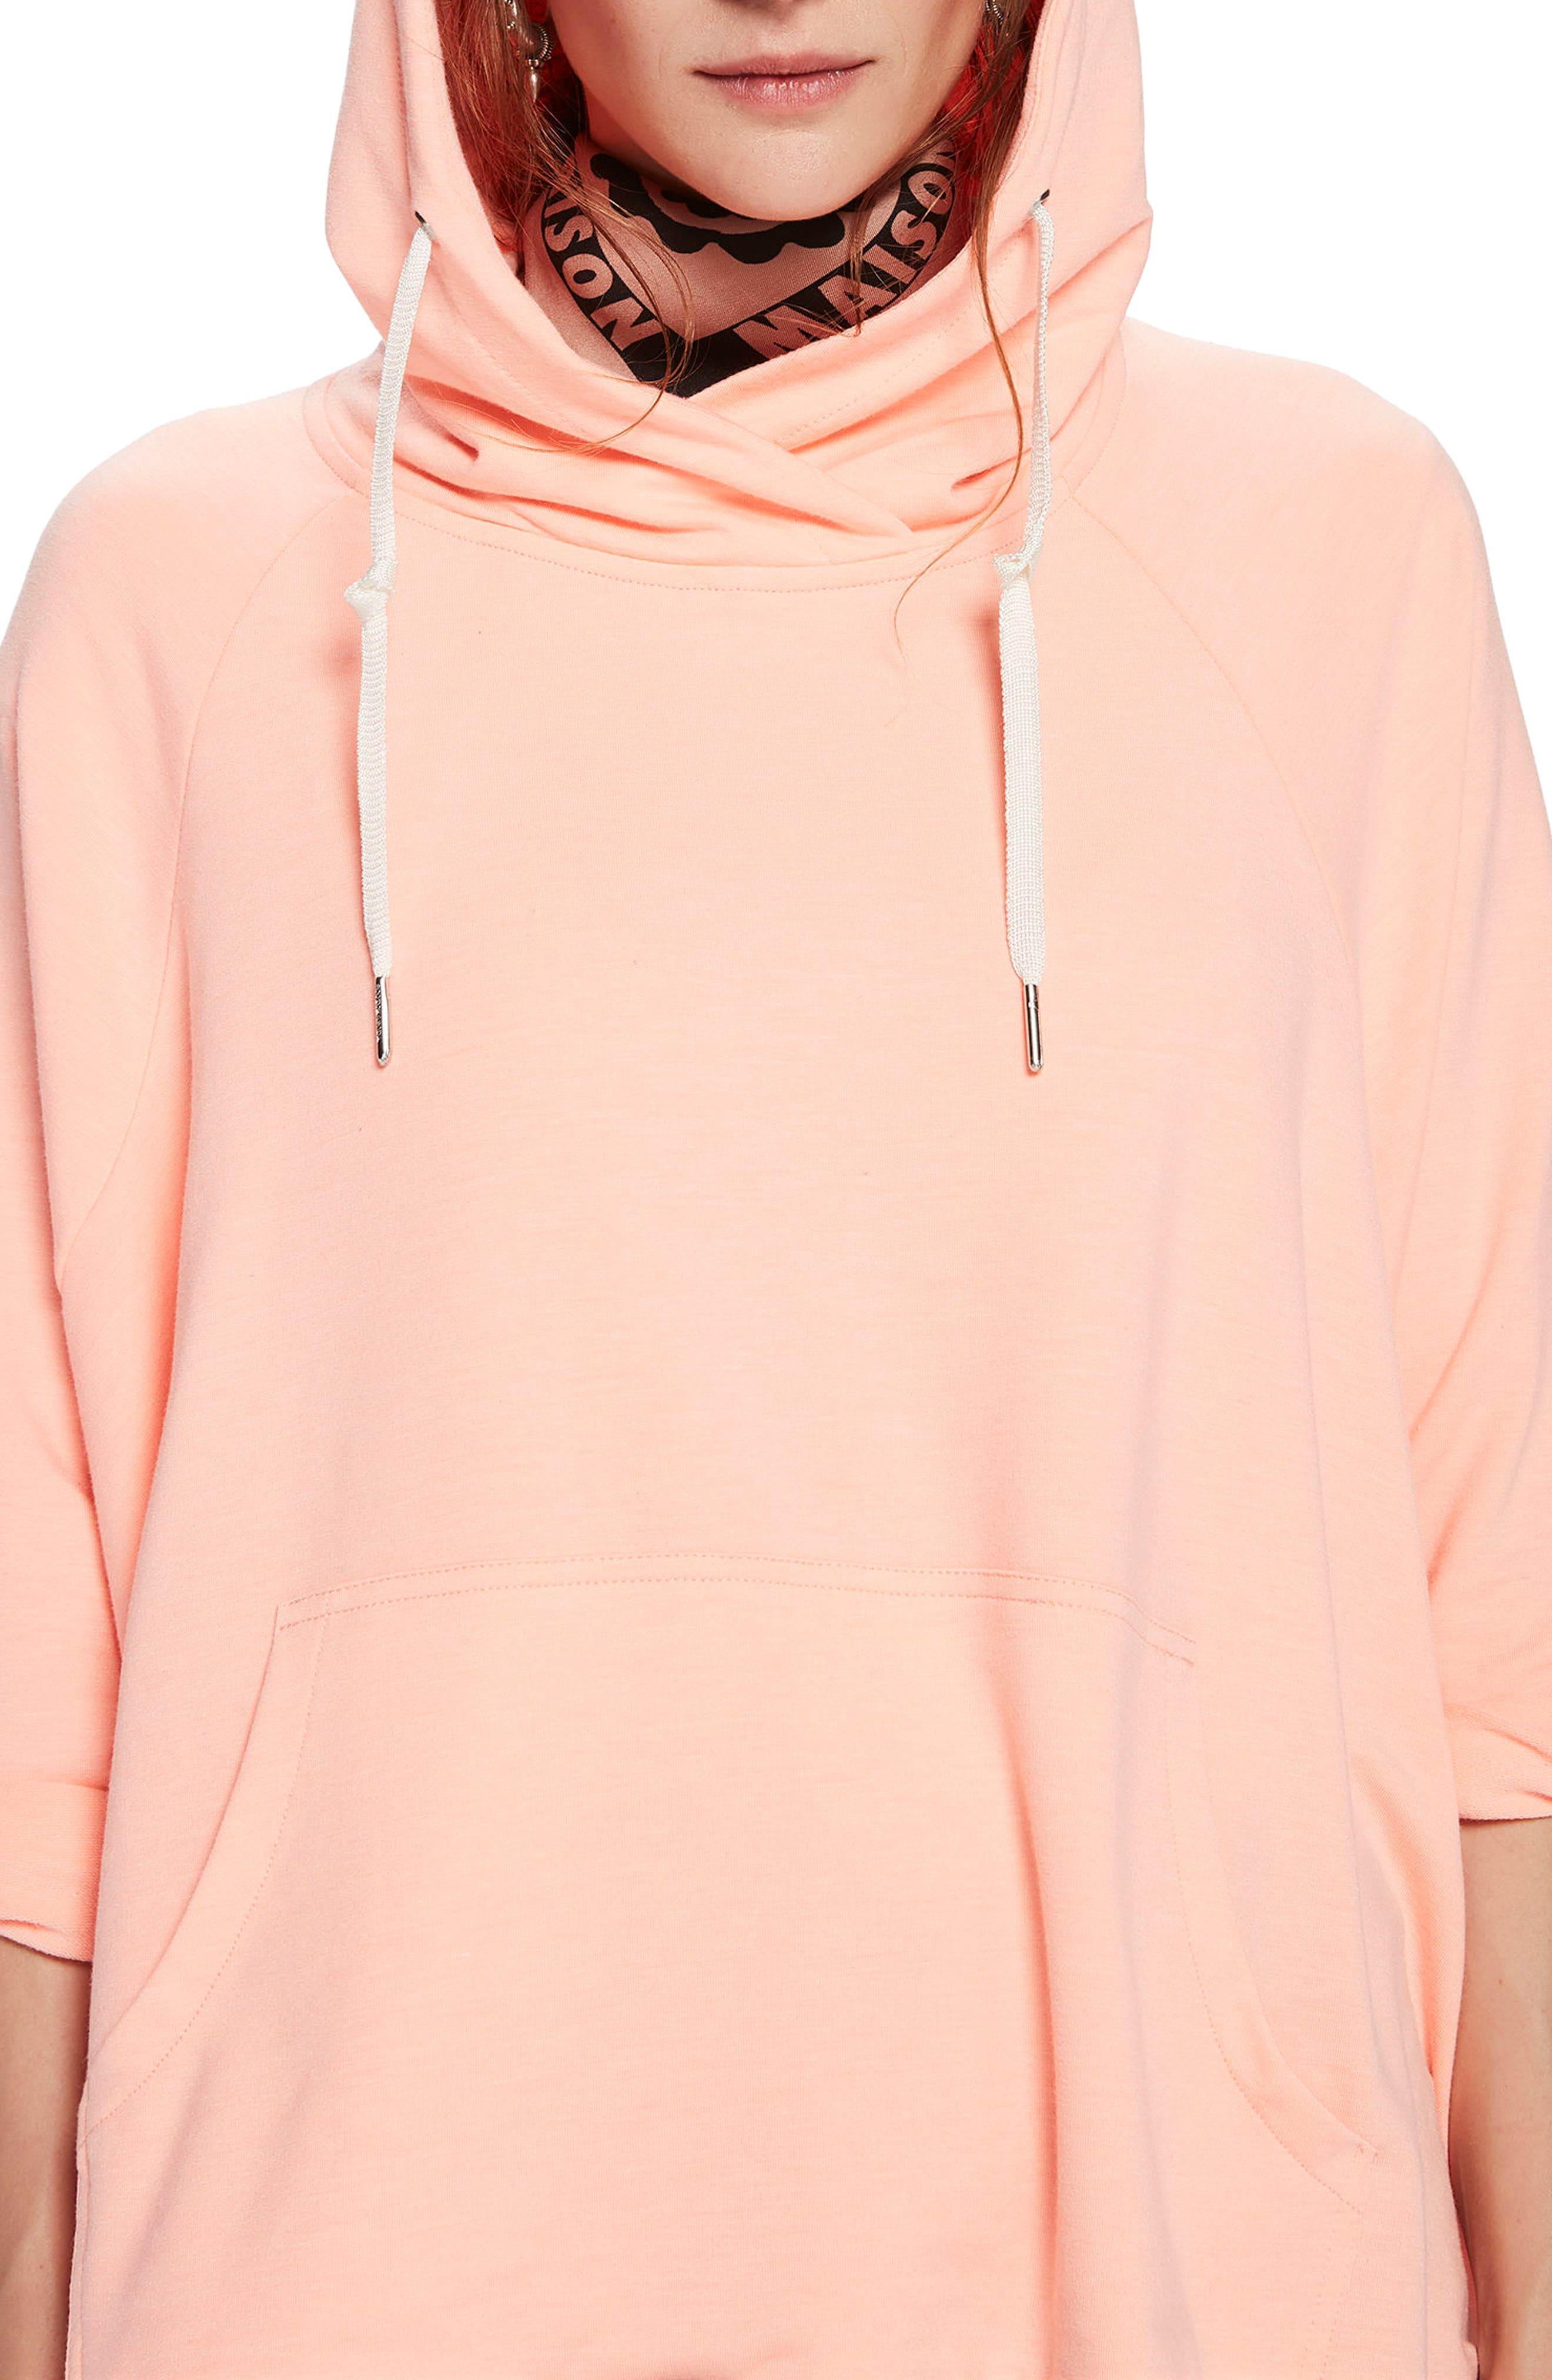 Boxy Fit Hoodie,                             Alternate thumbnail 4, color,                             950